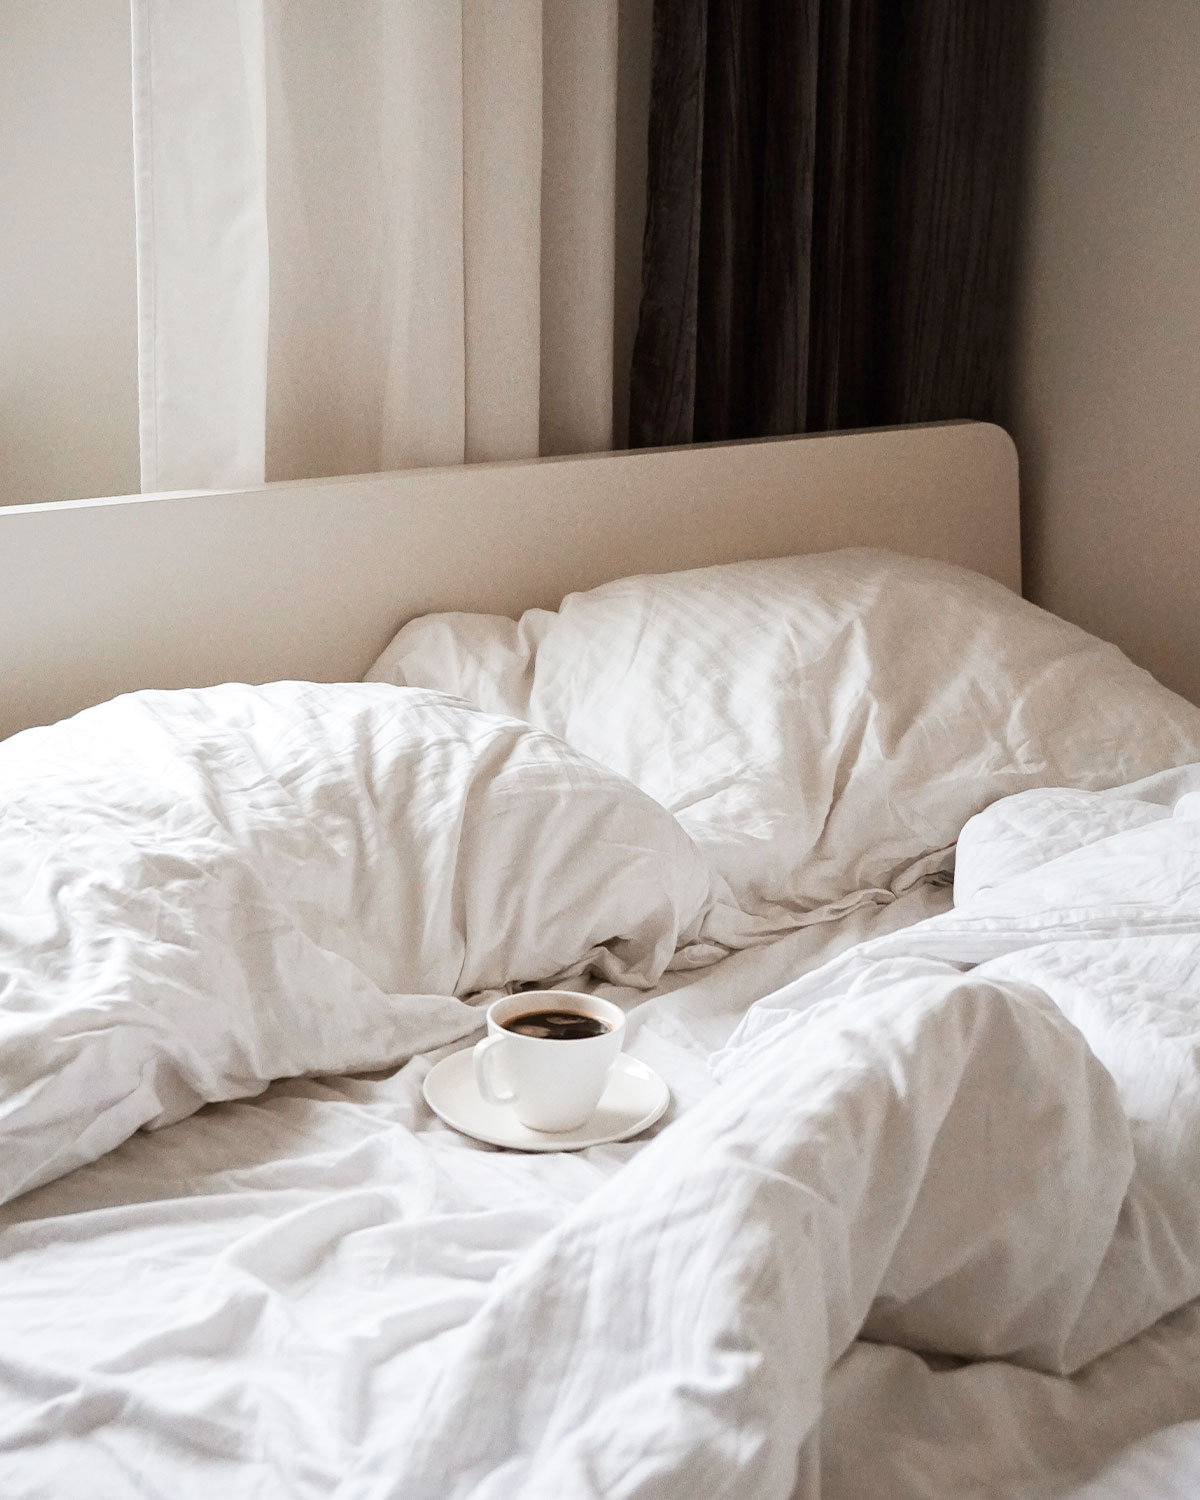 Cup of coffee in an empty unmade bed